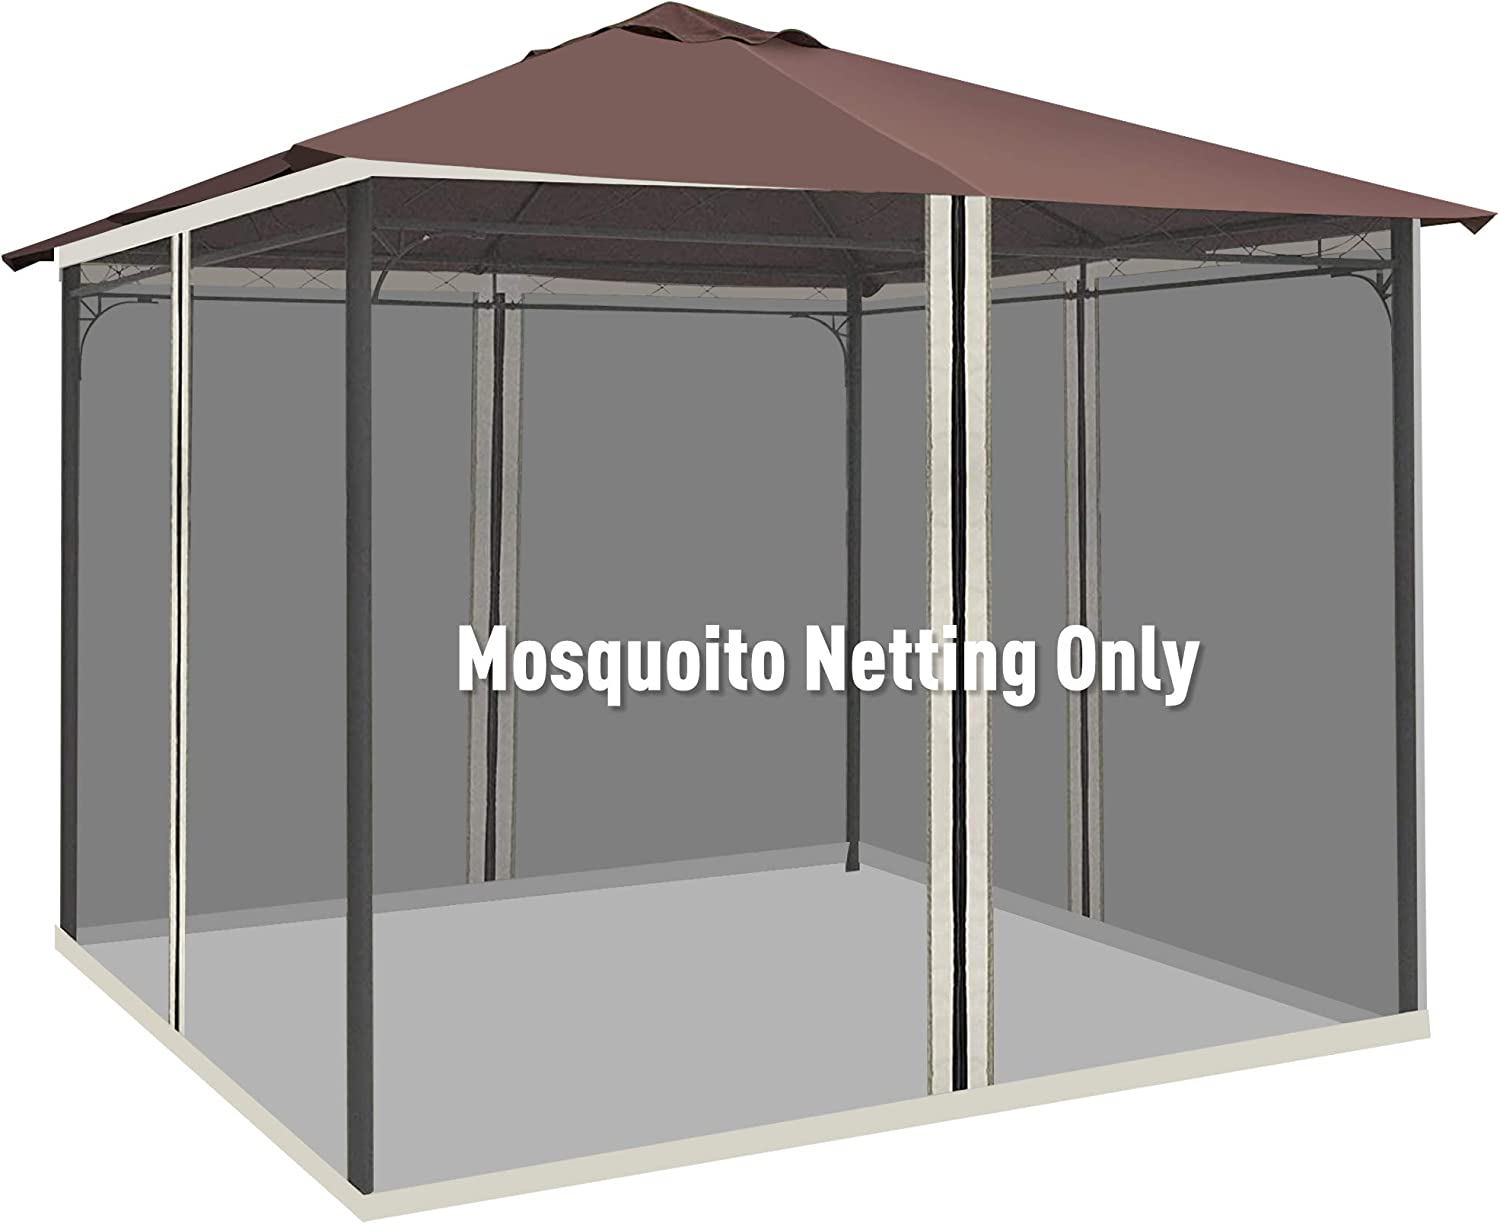 Outsunny 10' x 10' Universal Replacement Mesh Sidewall Netting for Patio Gazebos with Zippers, (Sidewall Only) Black